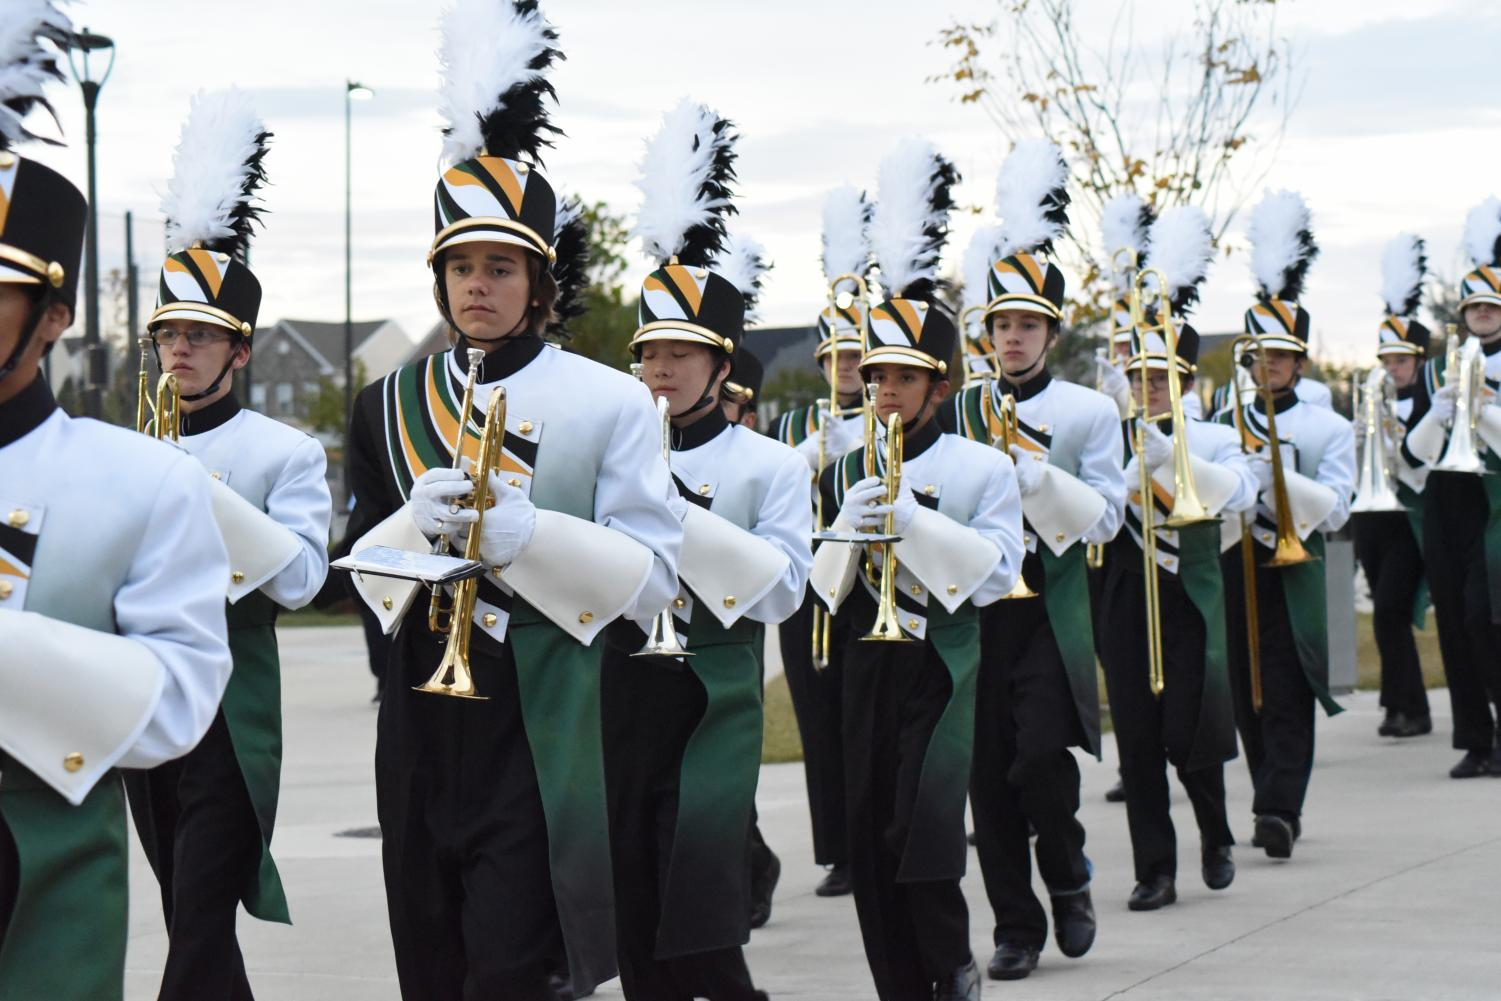 The band preforming last year back in October.